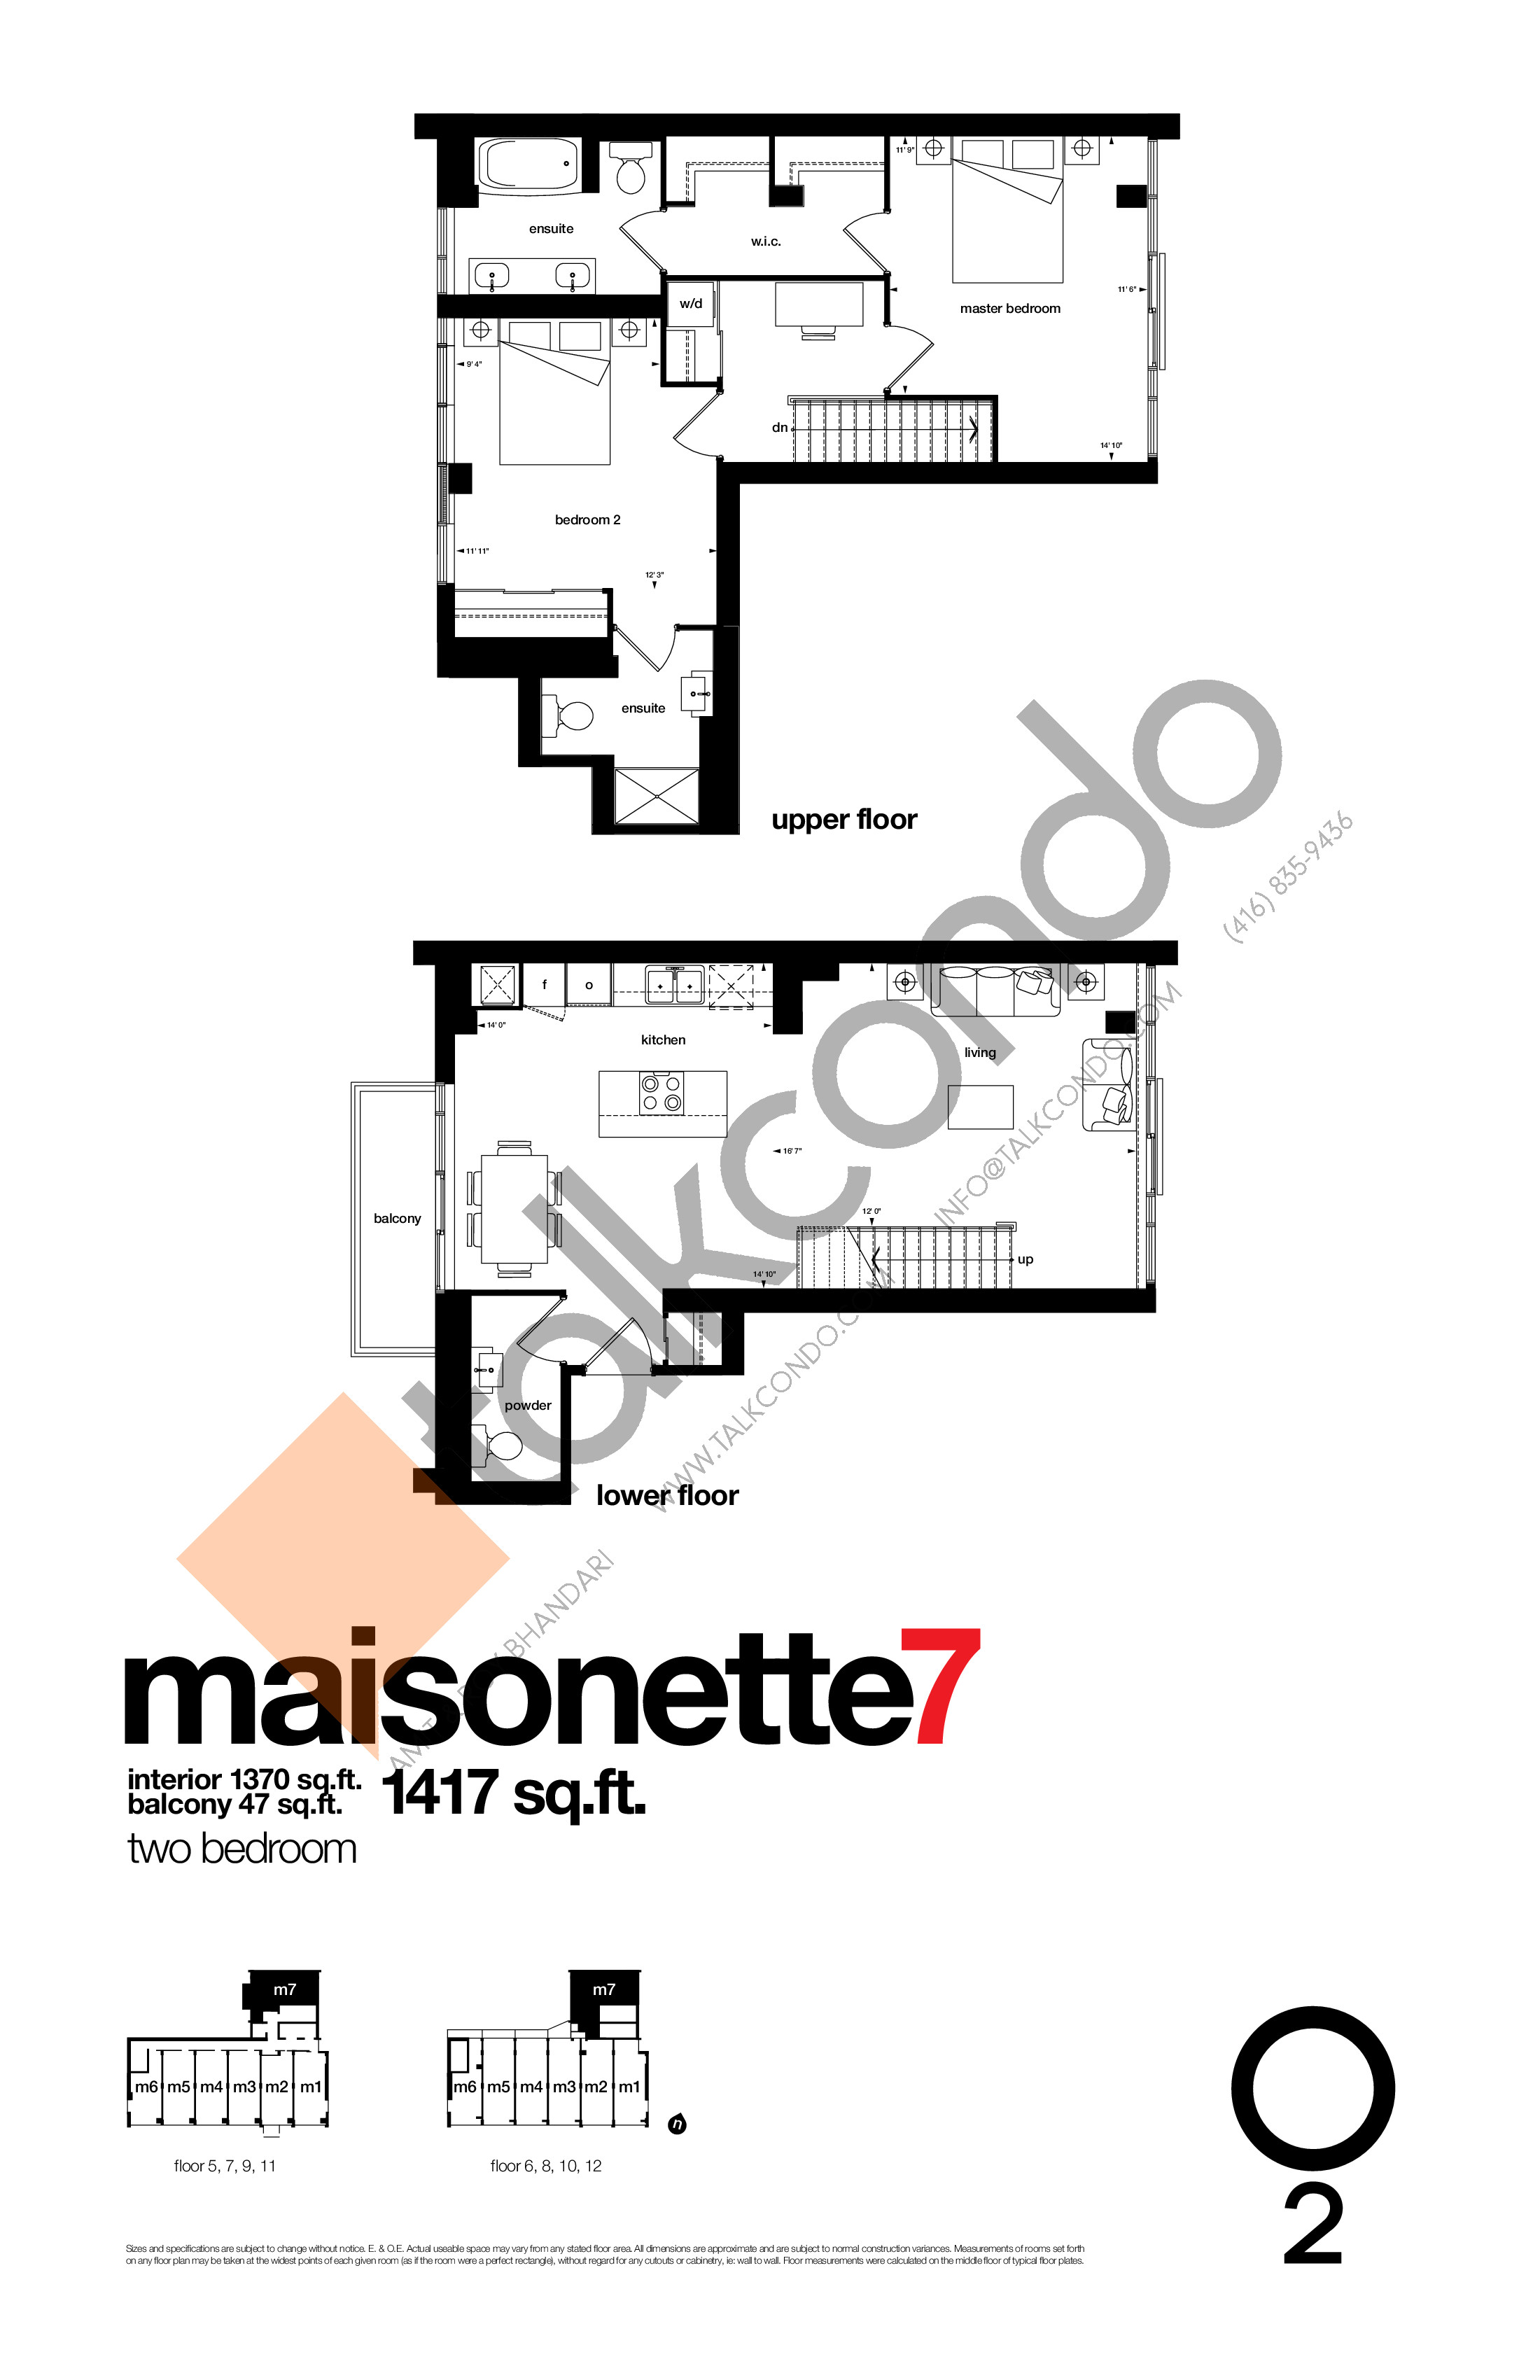 Maisonette7 Floor Plan at O2 Maisonettes on George Condos - 1370 sq.ft